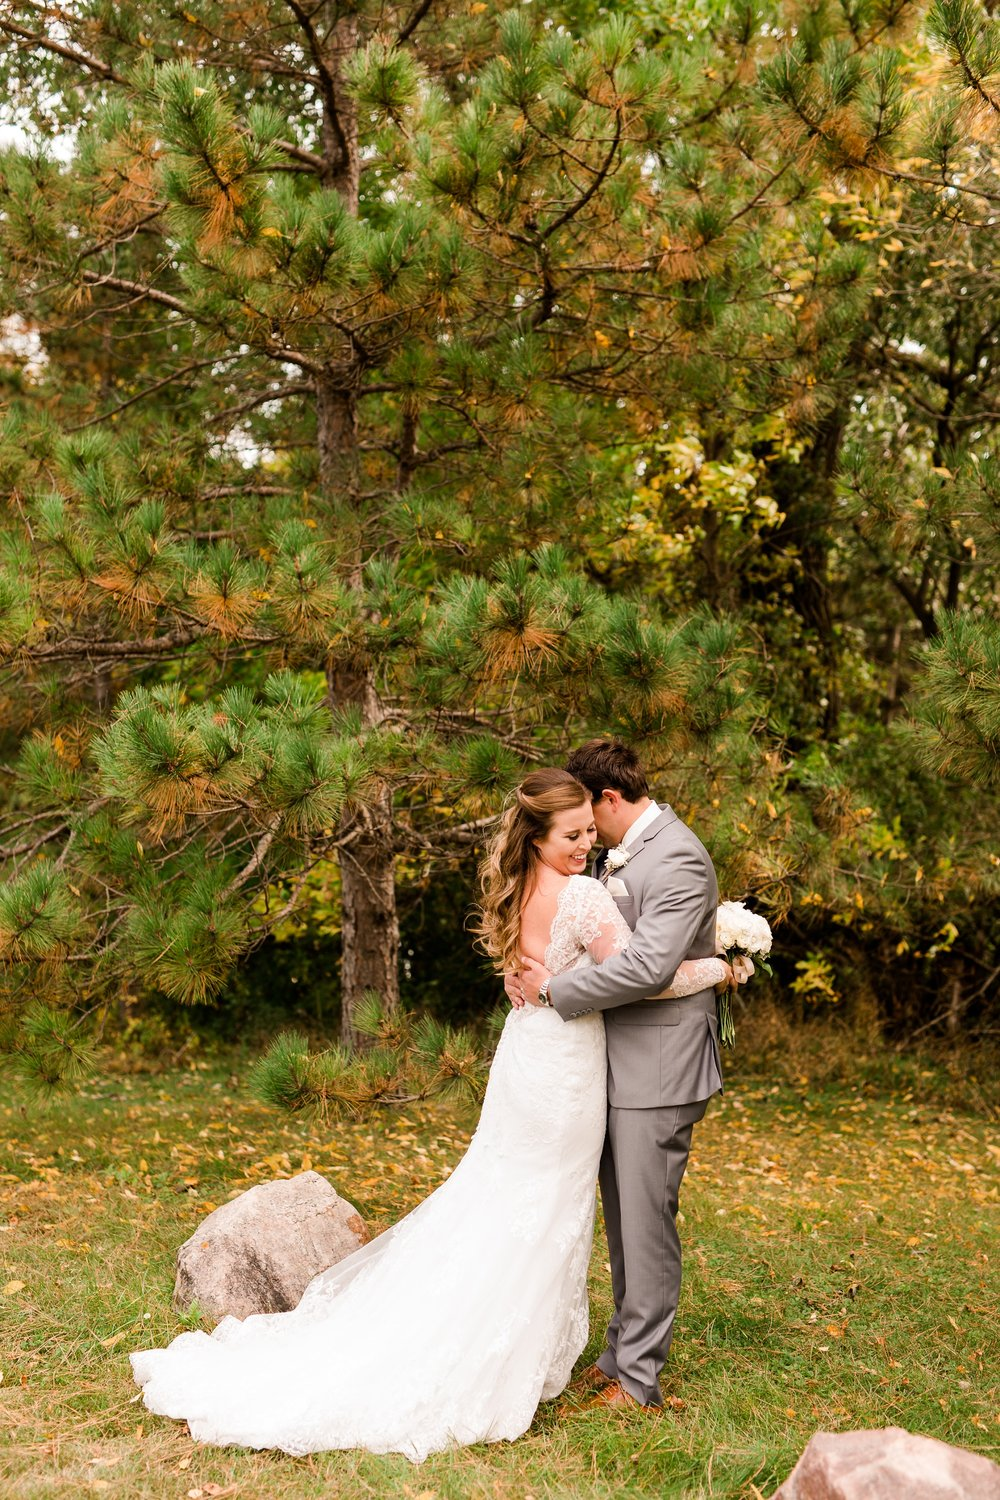 AmberLangerudPhotography_Fair Hills Resort Lakeside Wedding in Minnesota_3424.jpg